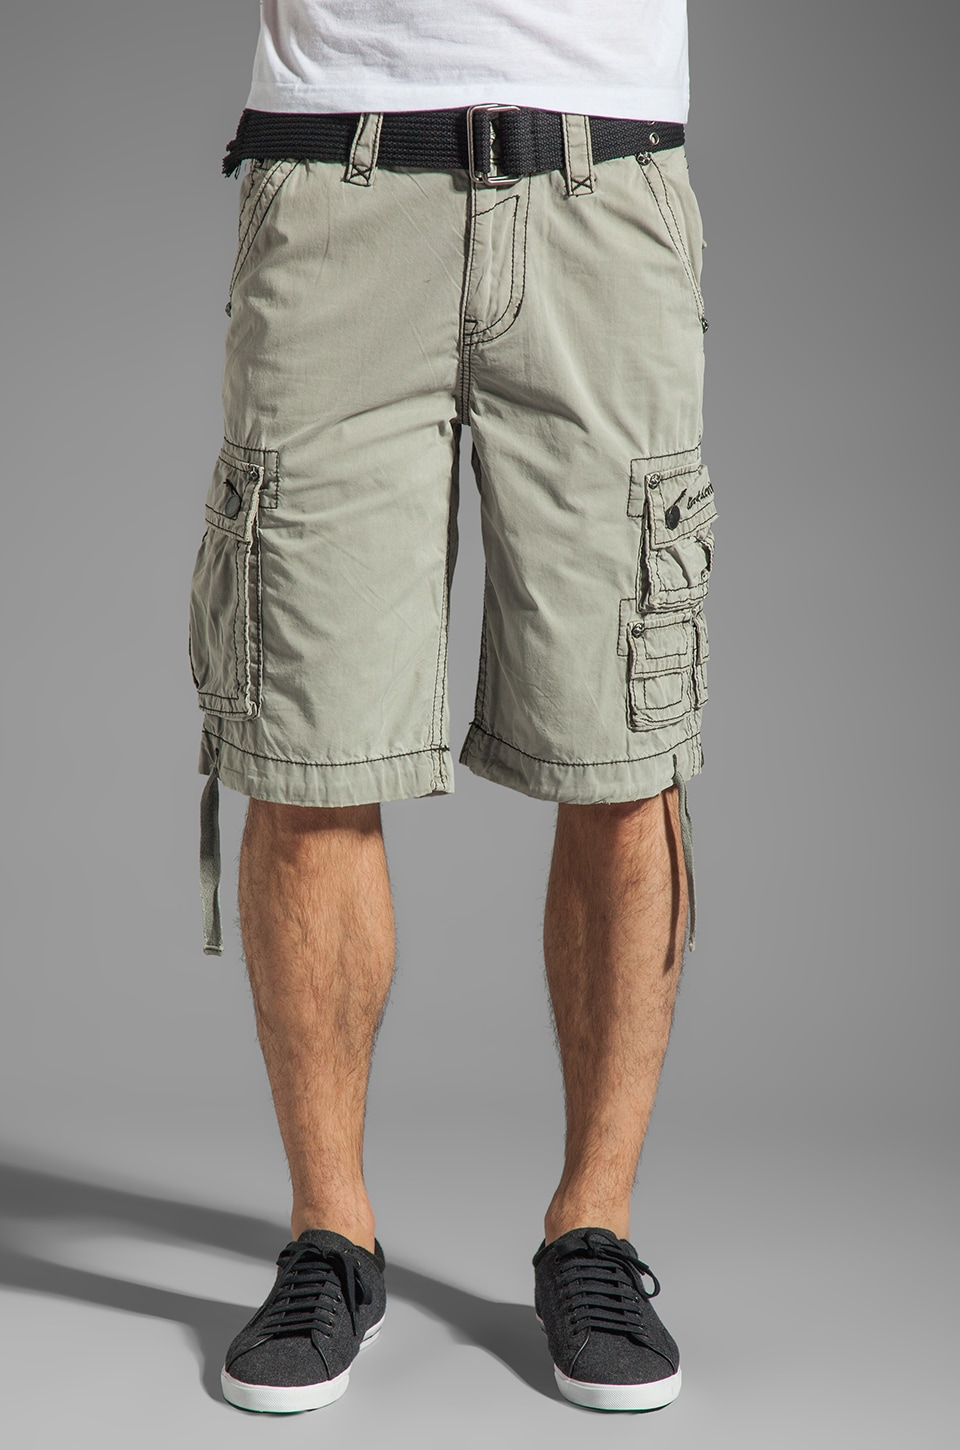 Rock Revival Cargo Short in Concrete